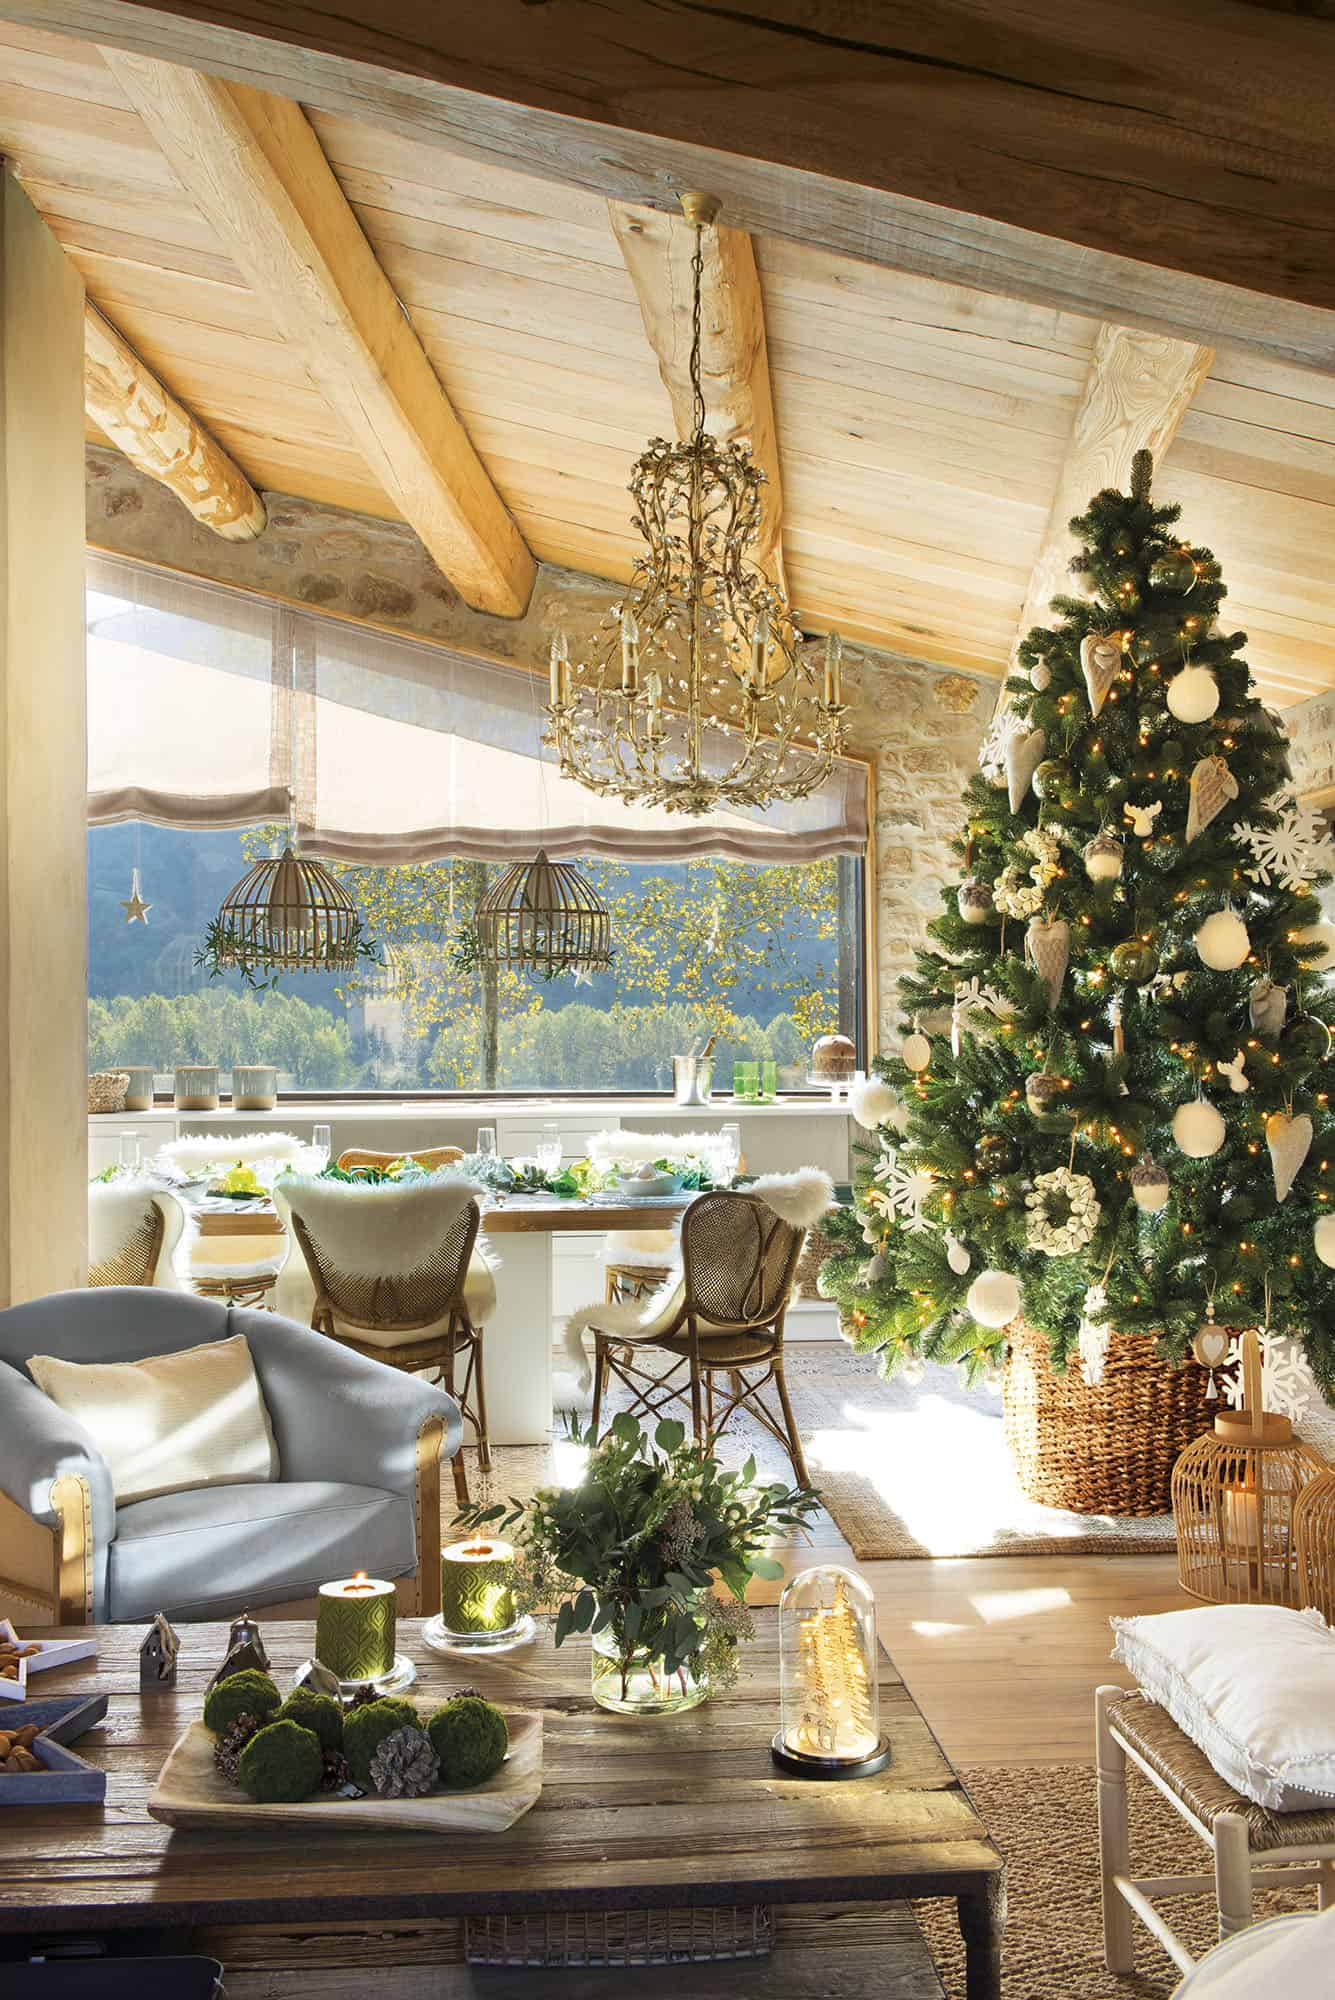 converted-barn-house-christmas-decorations-living-room